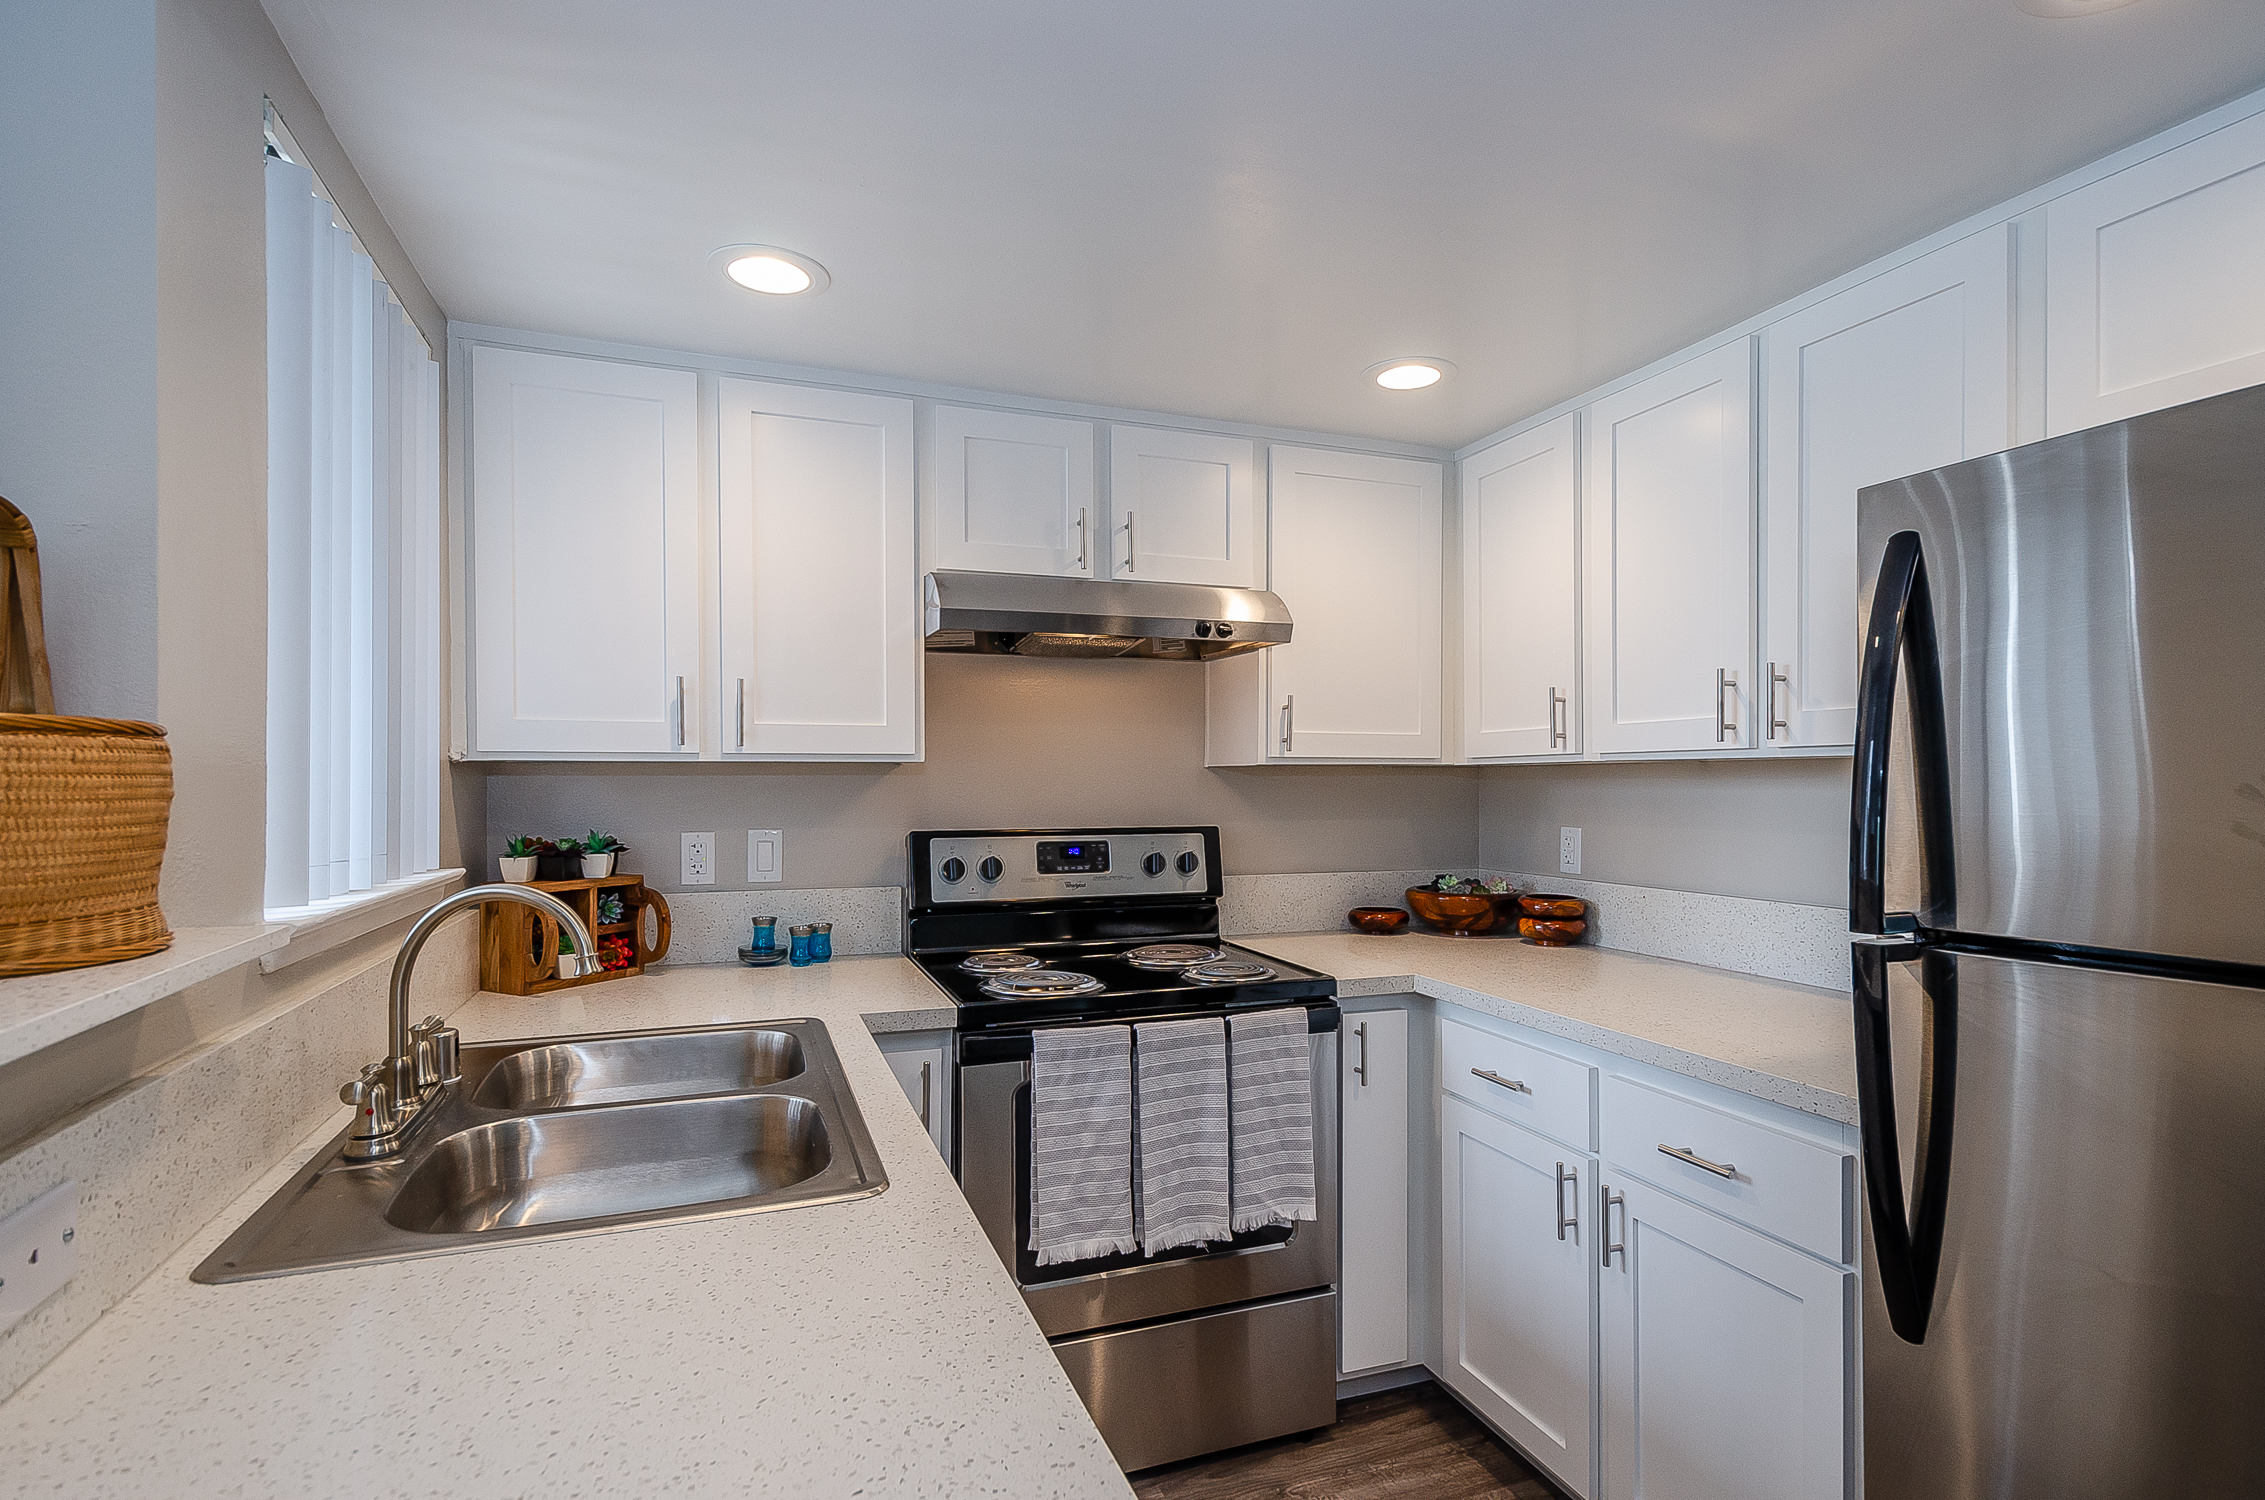 kitchen with stainless steel appliances, double sink, window, painted cabinets with sleek hardware